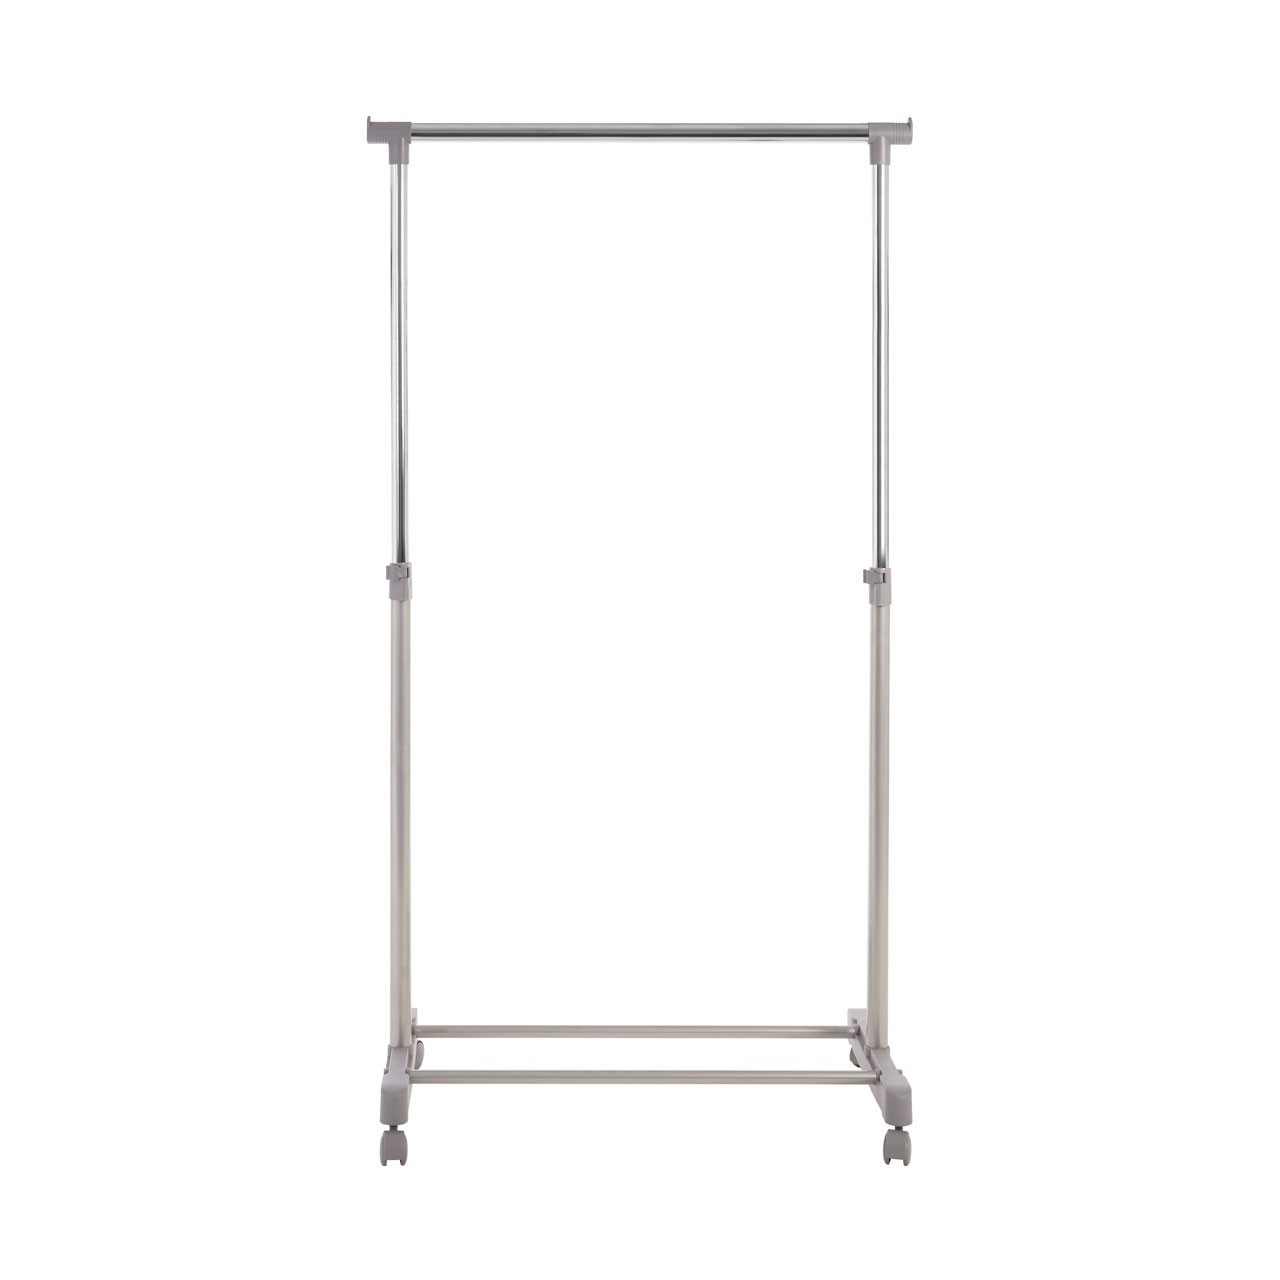 Prime Furnishing Hanging Rail with Wheels